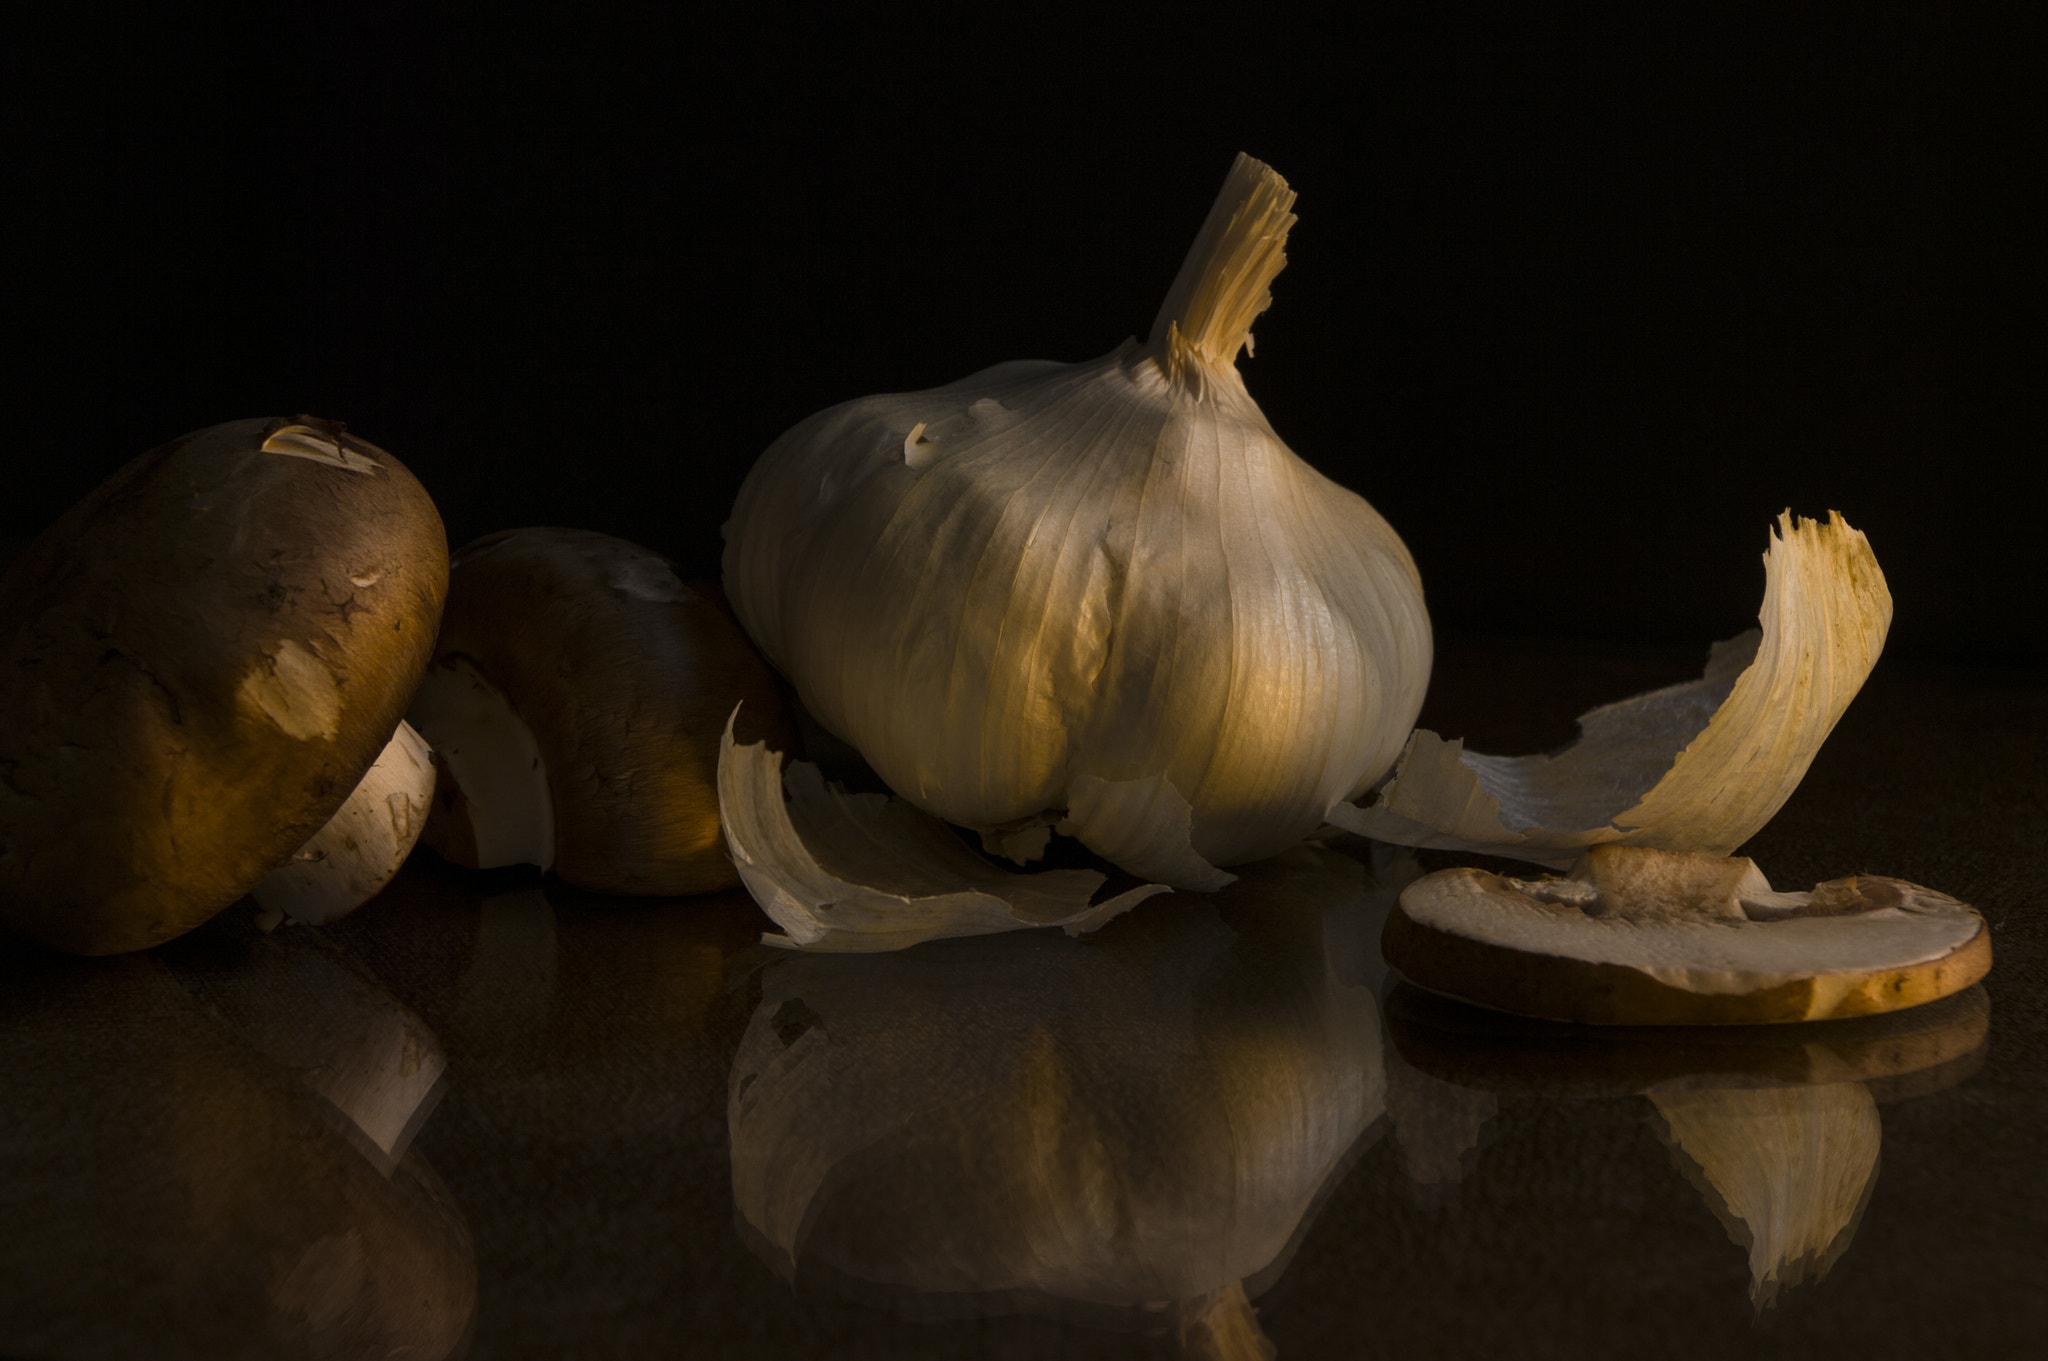 Photograph Mushrooms and Garlic by Mia Lisa Anderson on 500px